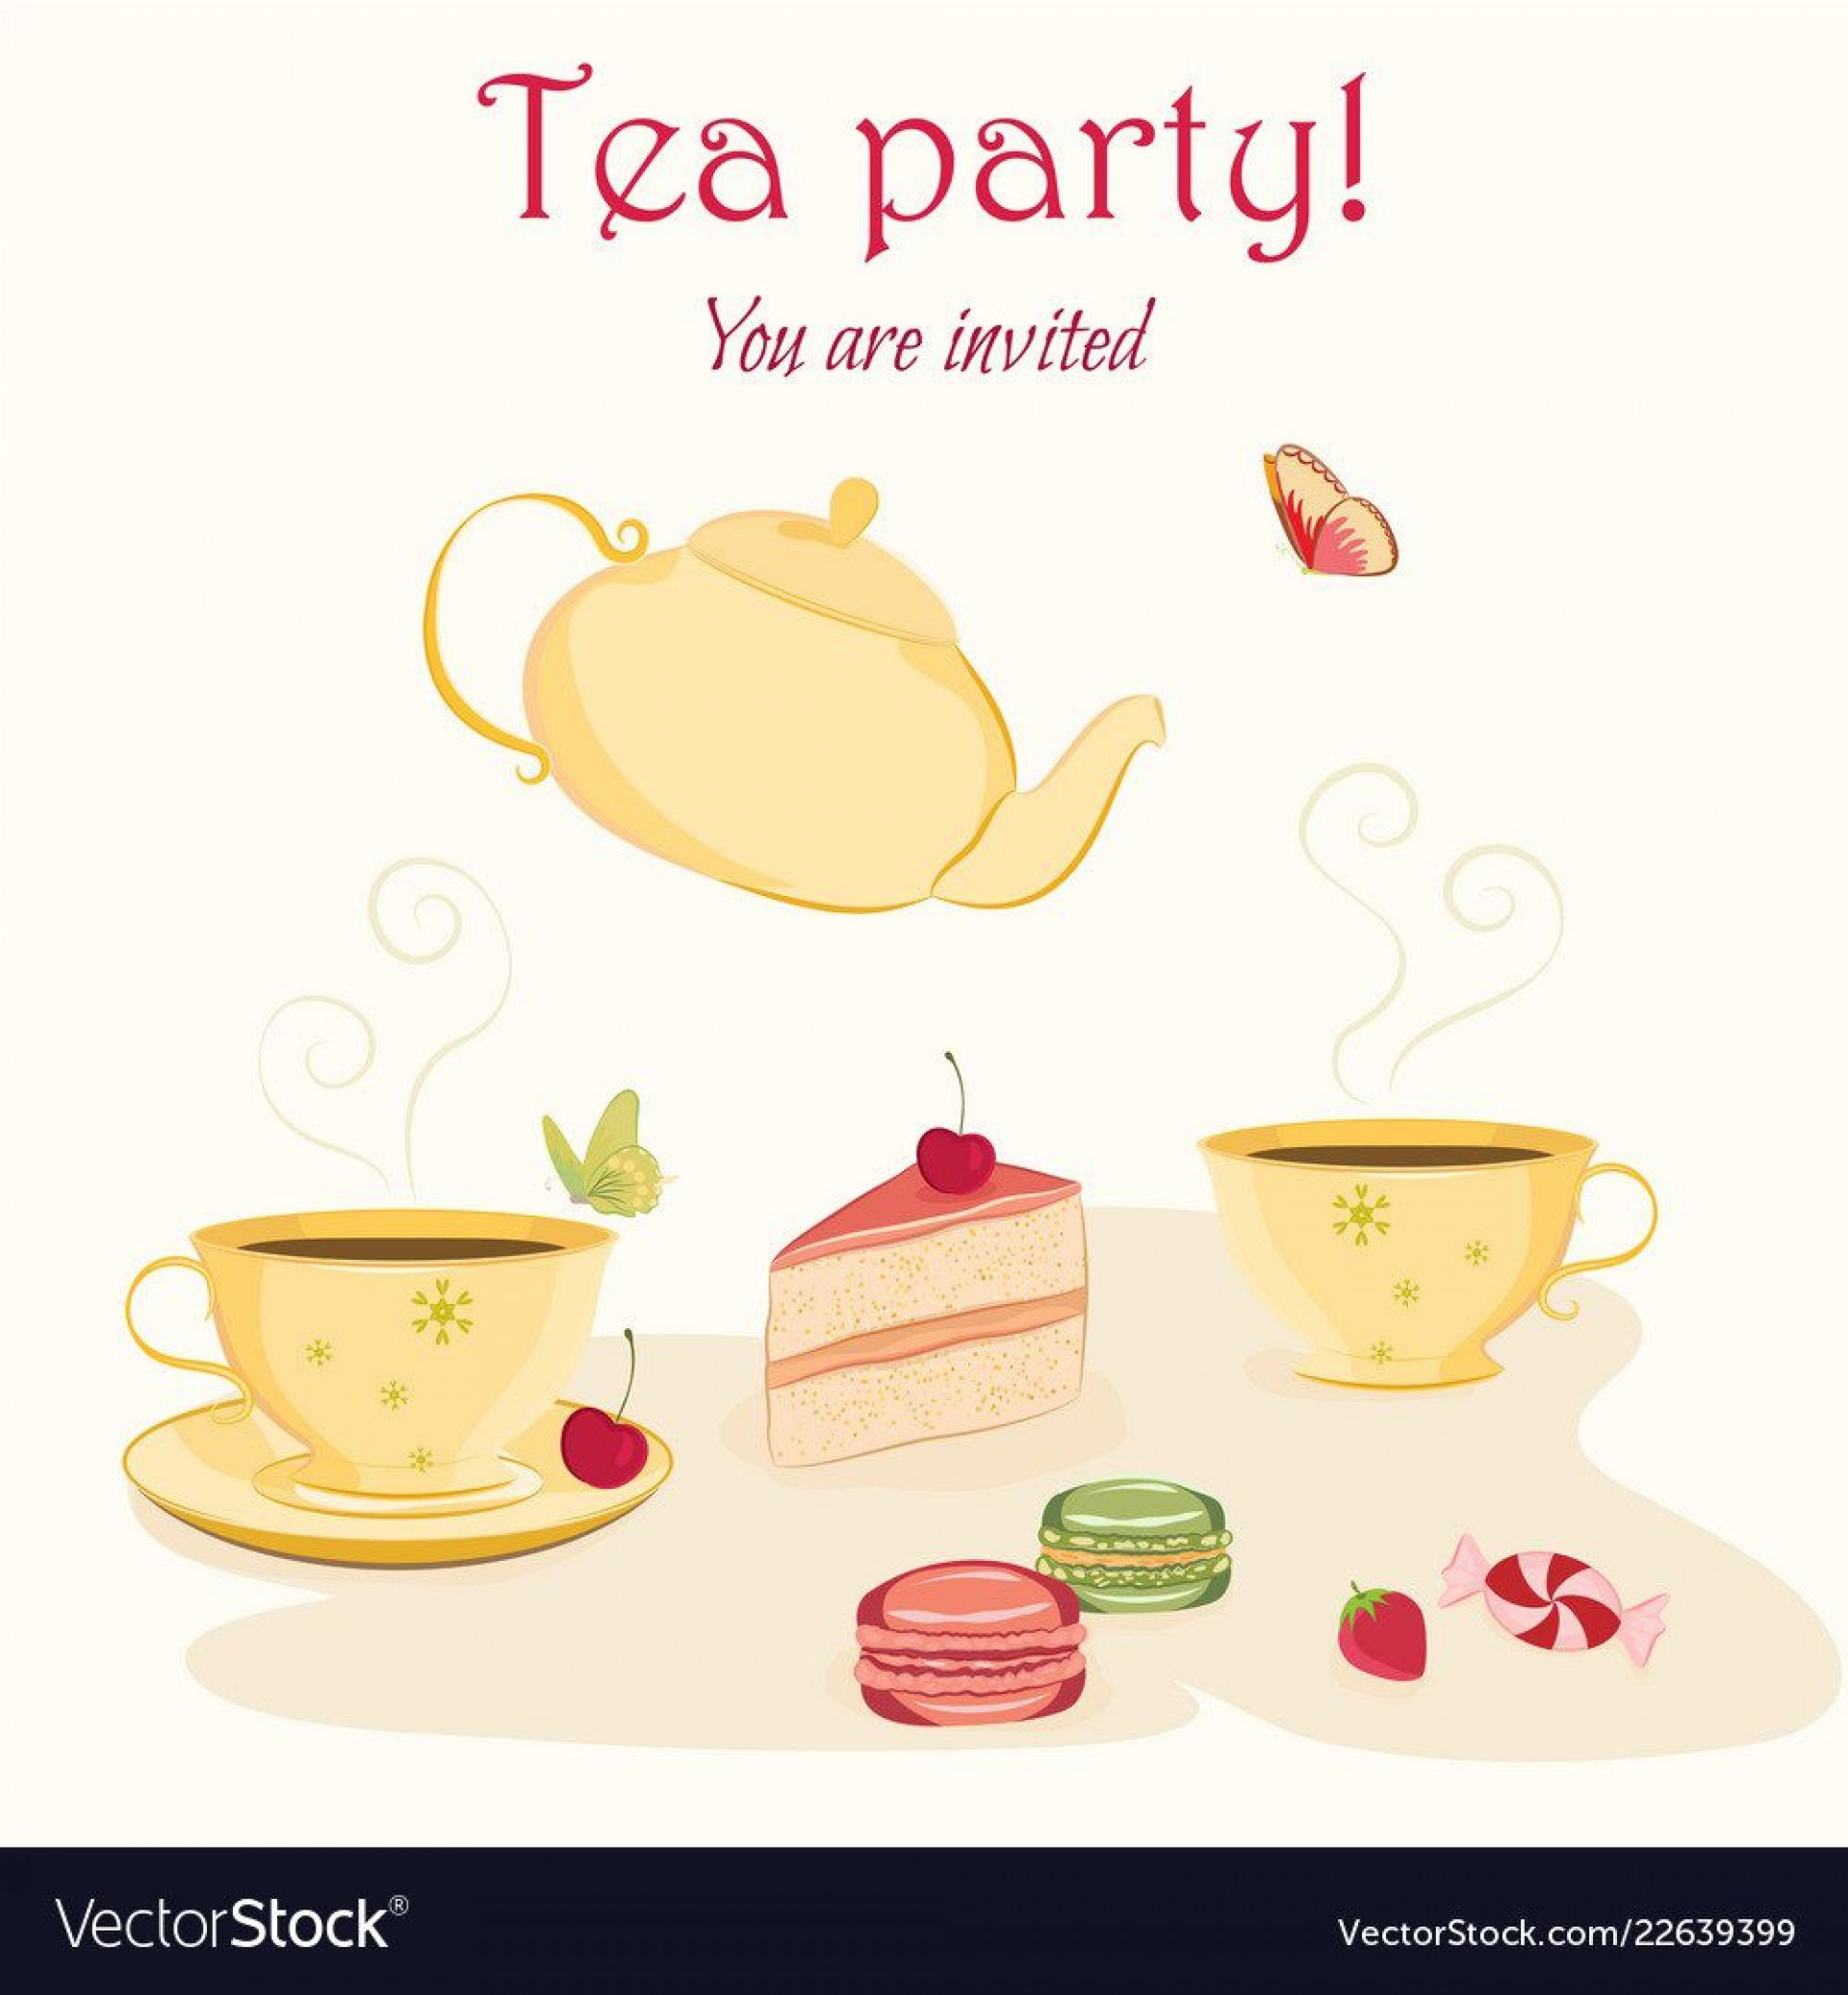 007 Exceptional Tea Party Invitation Template Photo  Vintage Free Editable Card Pdf1920